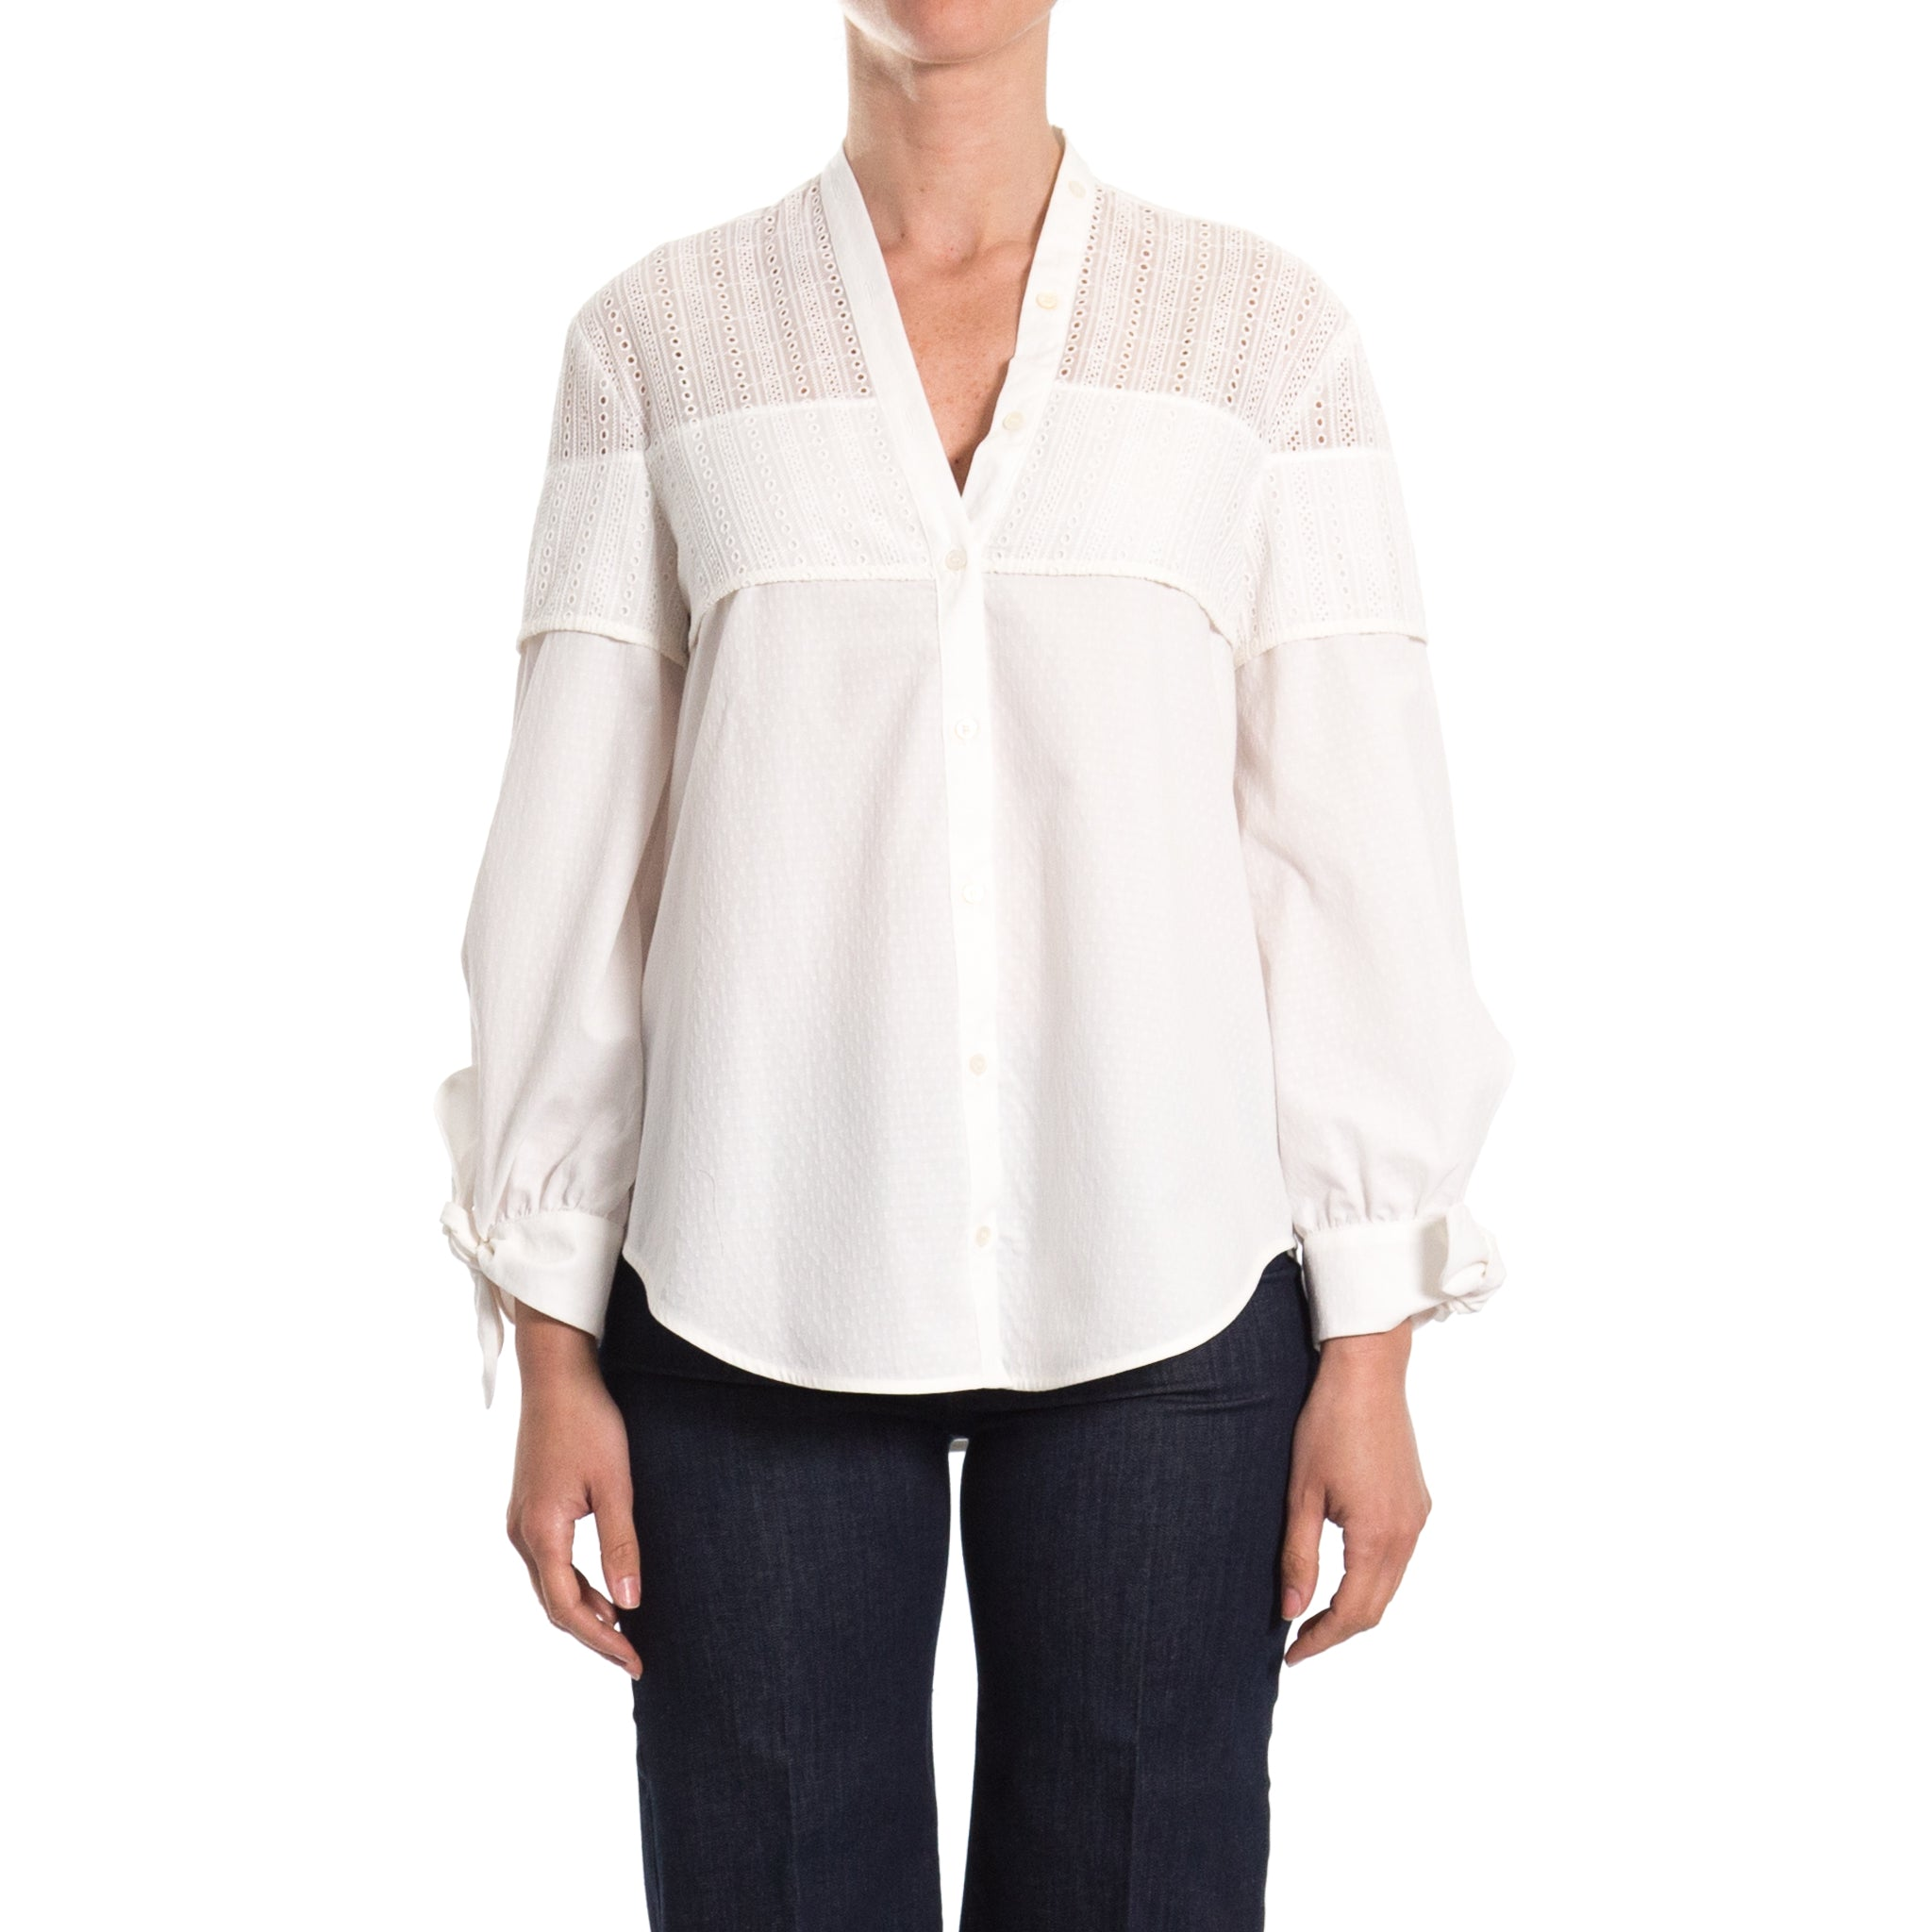 Max Mara Weekend Flared Cotton Blend Blouse-MAX MARA WEEKEND-SHOPATVOI.COM - Luxury Fashion Designer